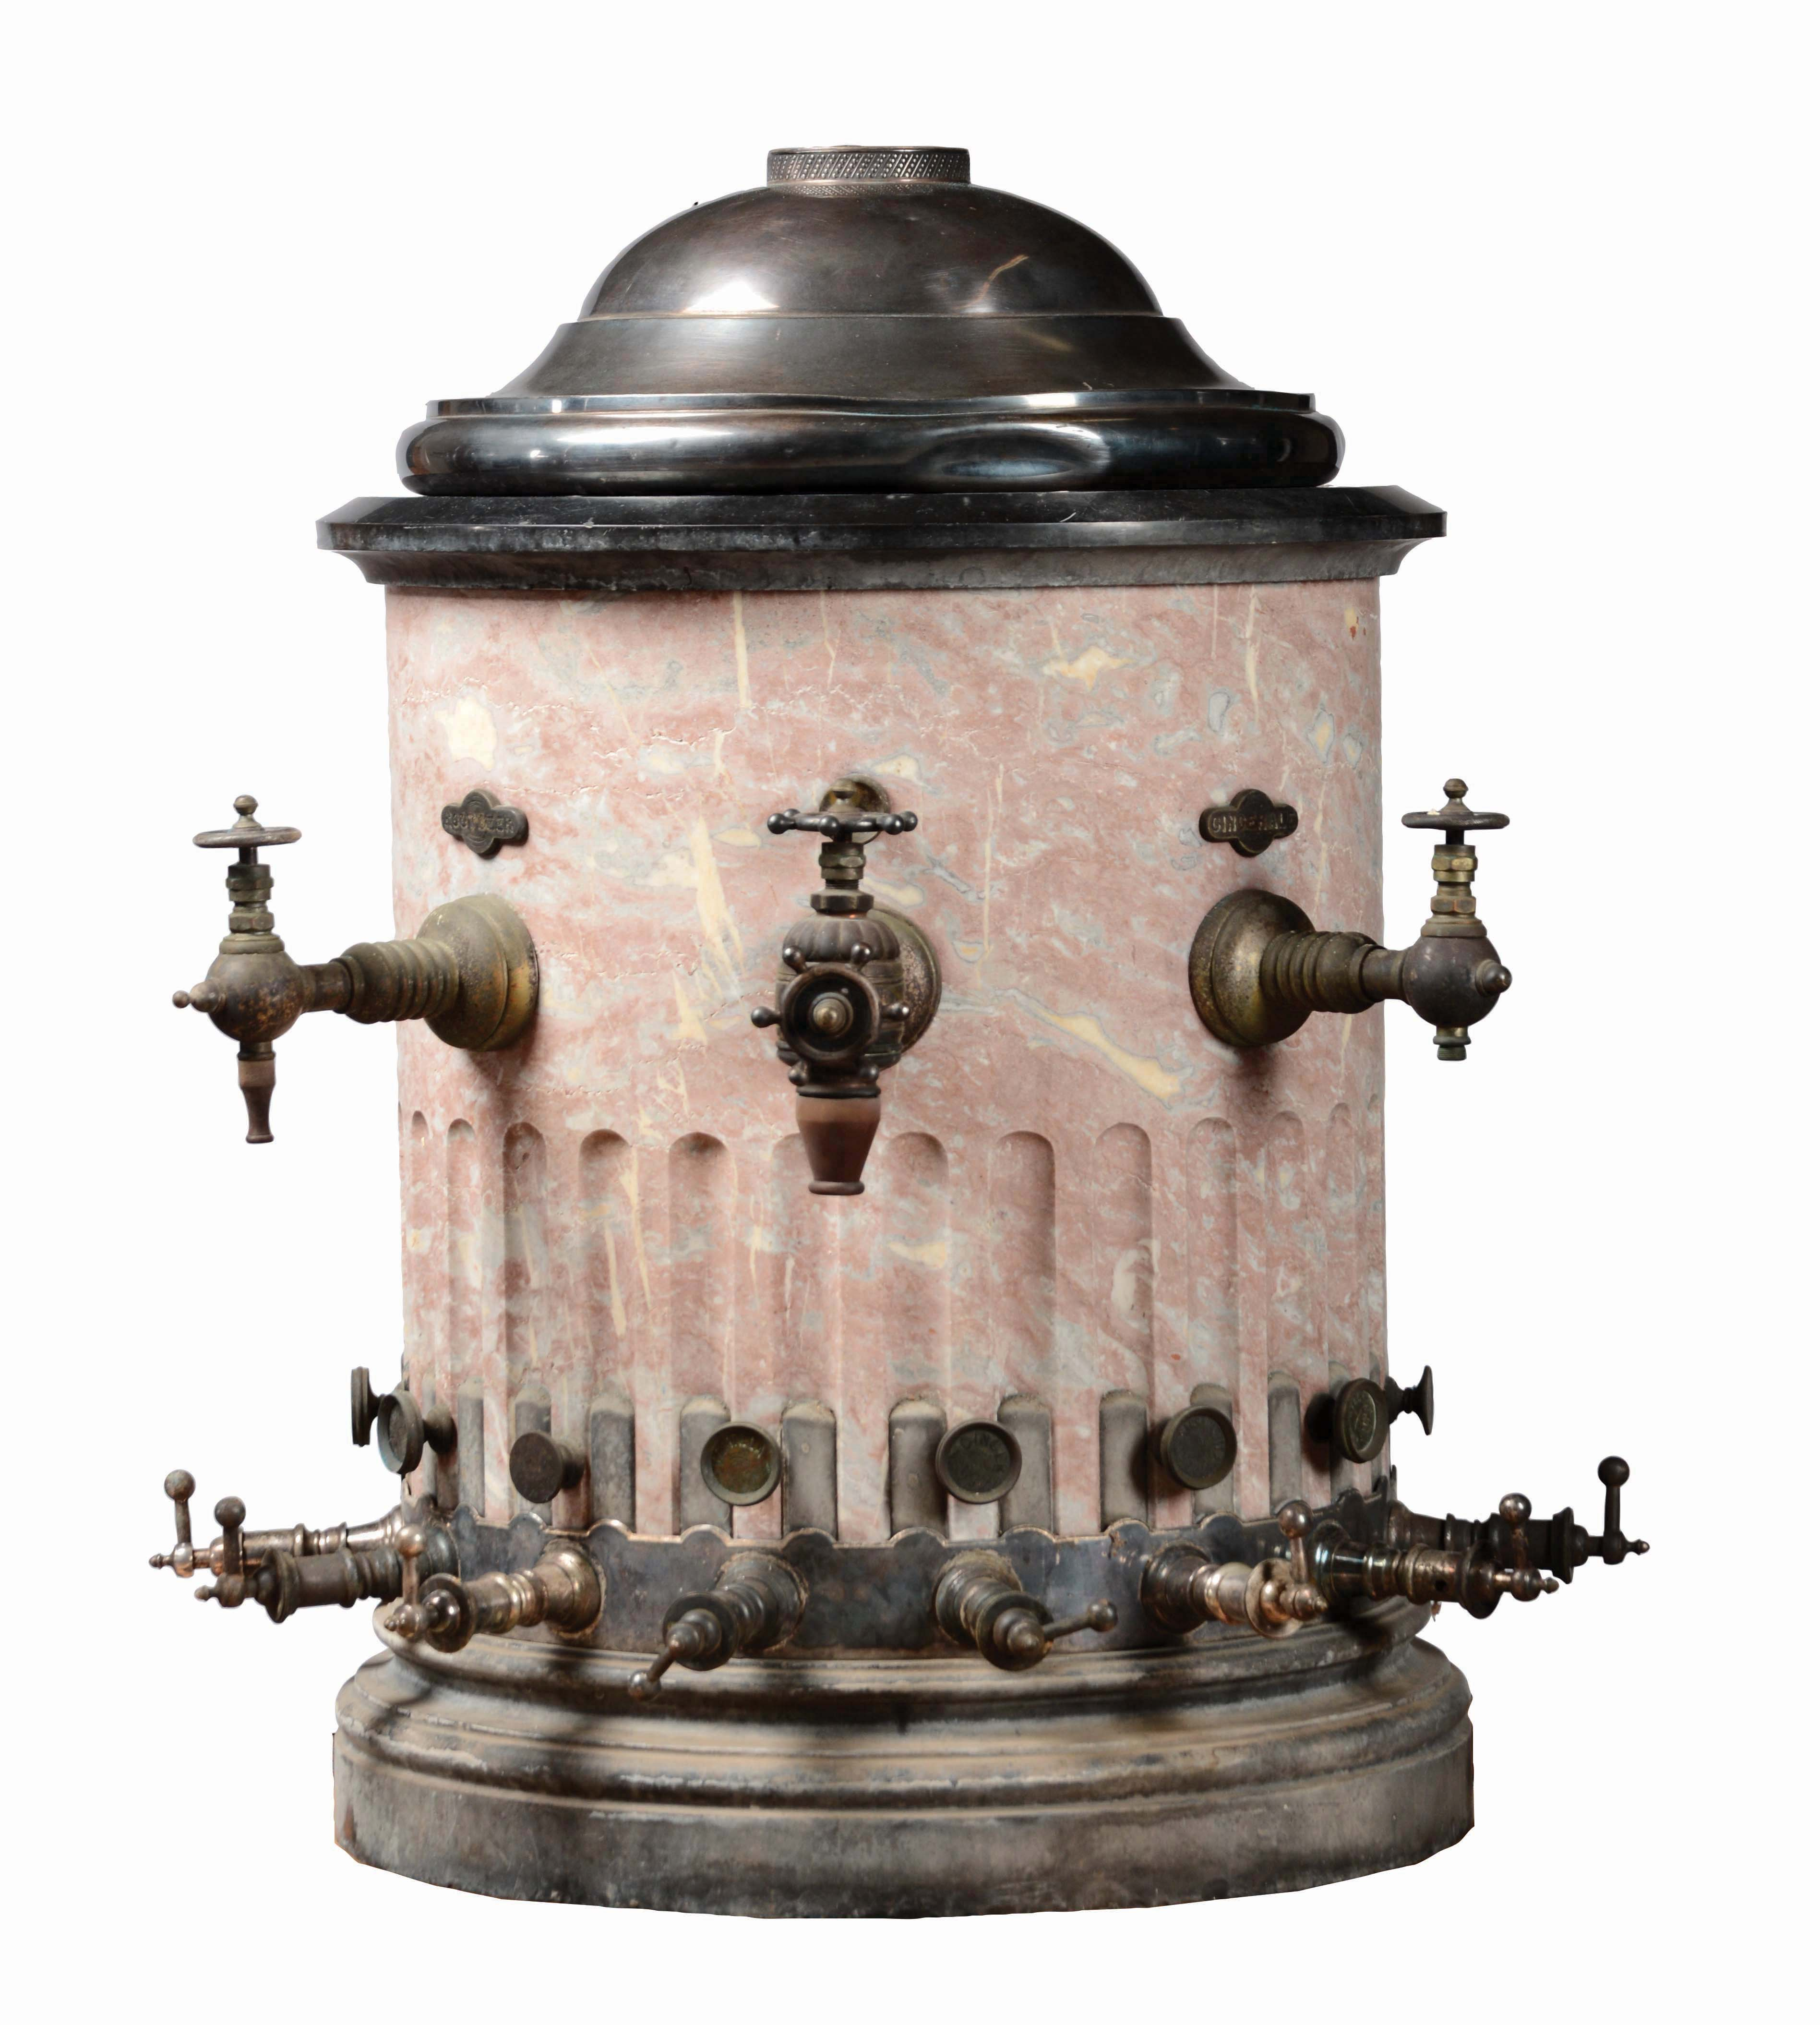 The Arctic Soda Water Apparatus Marble Dispenser